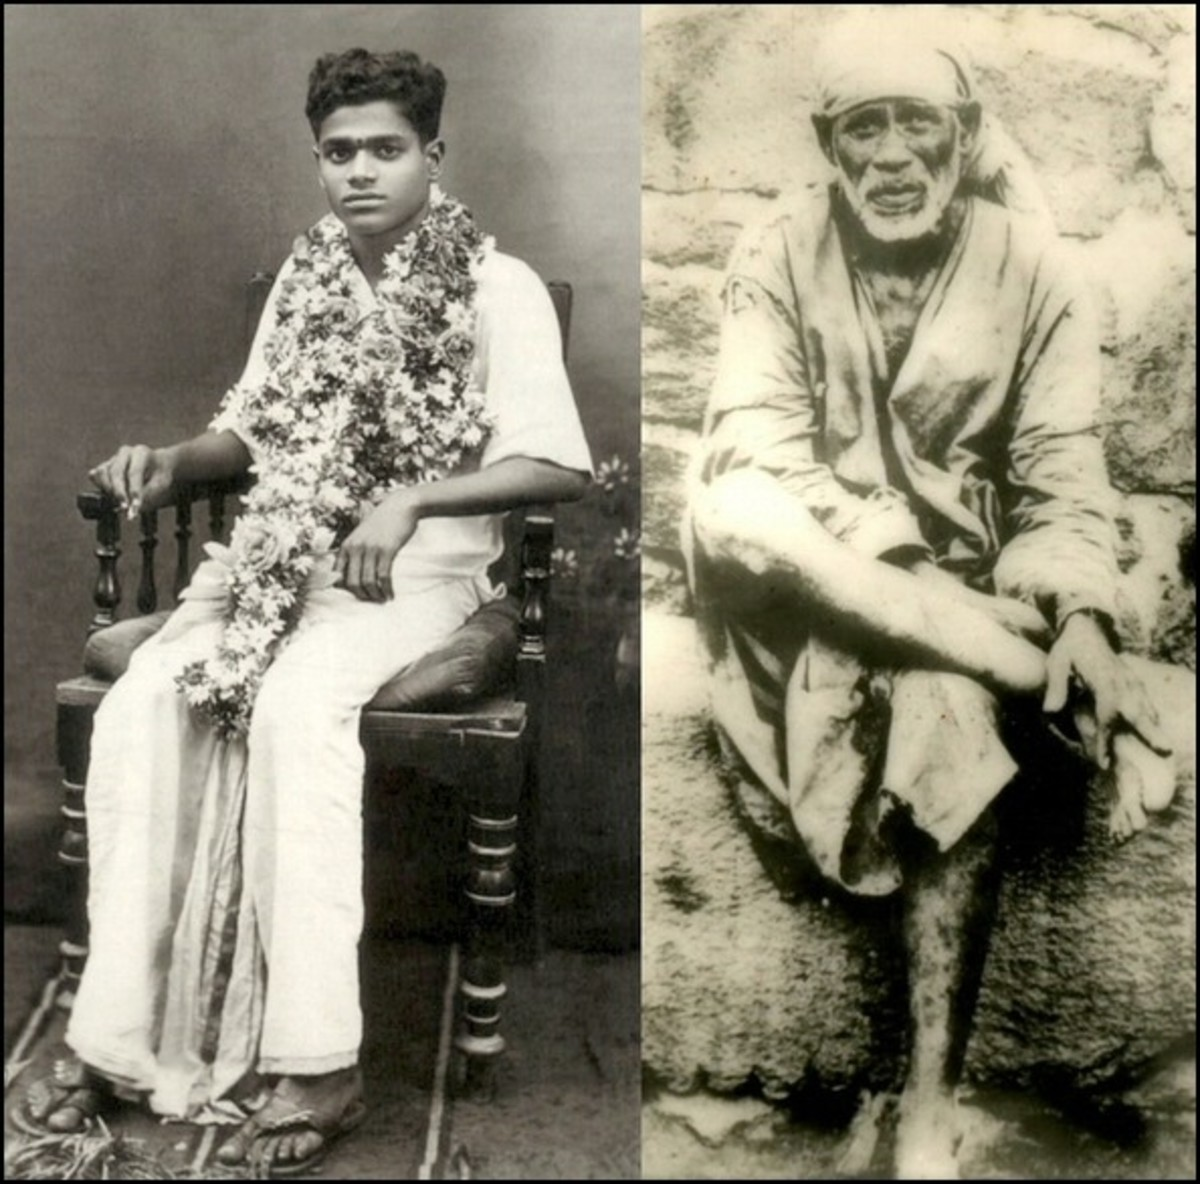 Sri Sathya Sai Baba (beginning days) and Sri Shirdi Sai Baba (final days) - many have experienced the unity of the two Babas.